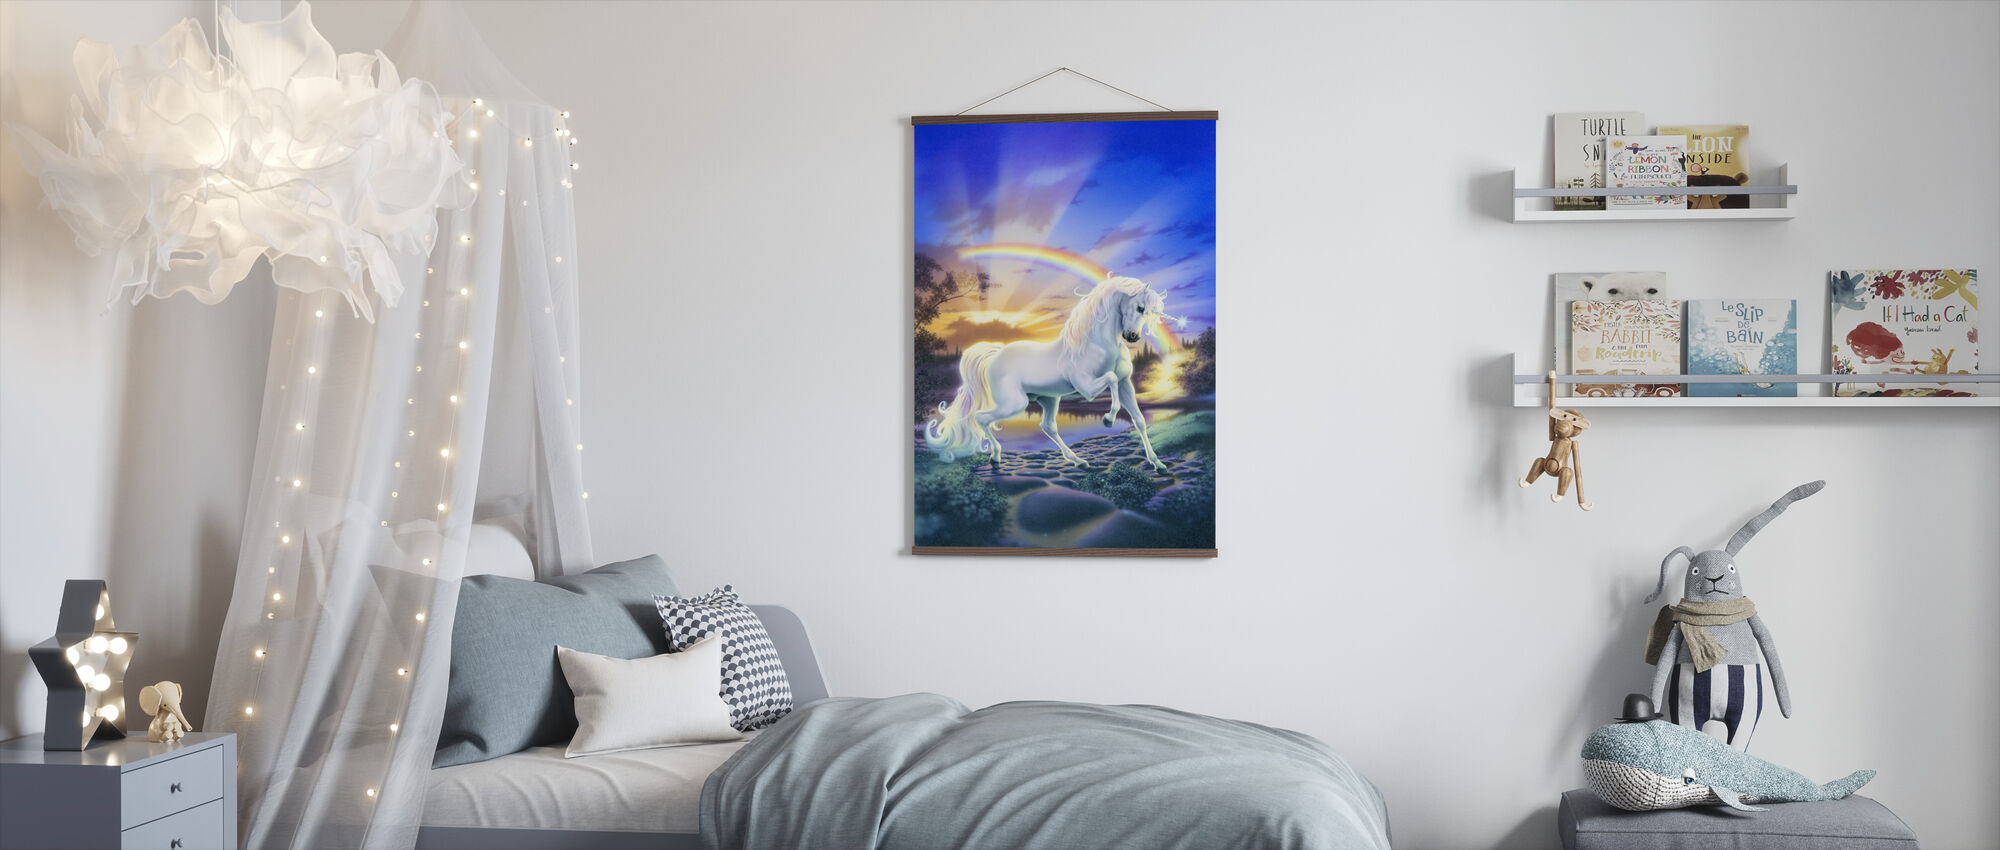 Rainbow Unicorn - Poster - Kids Room